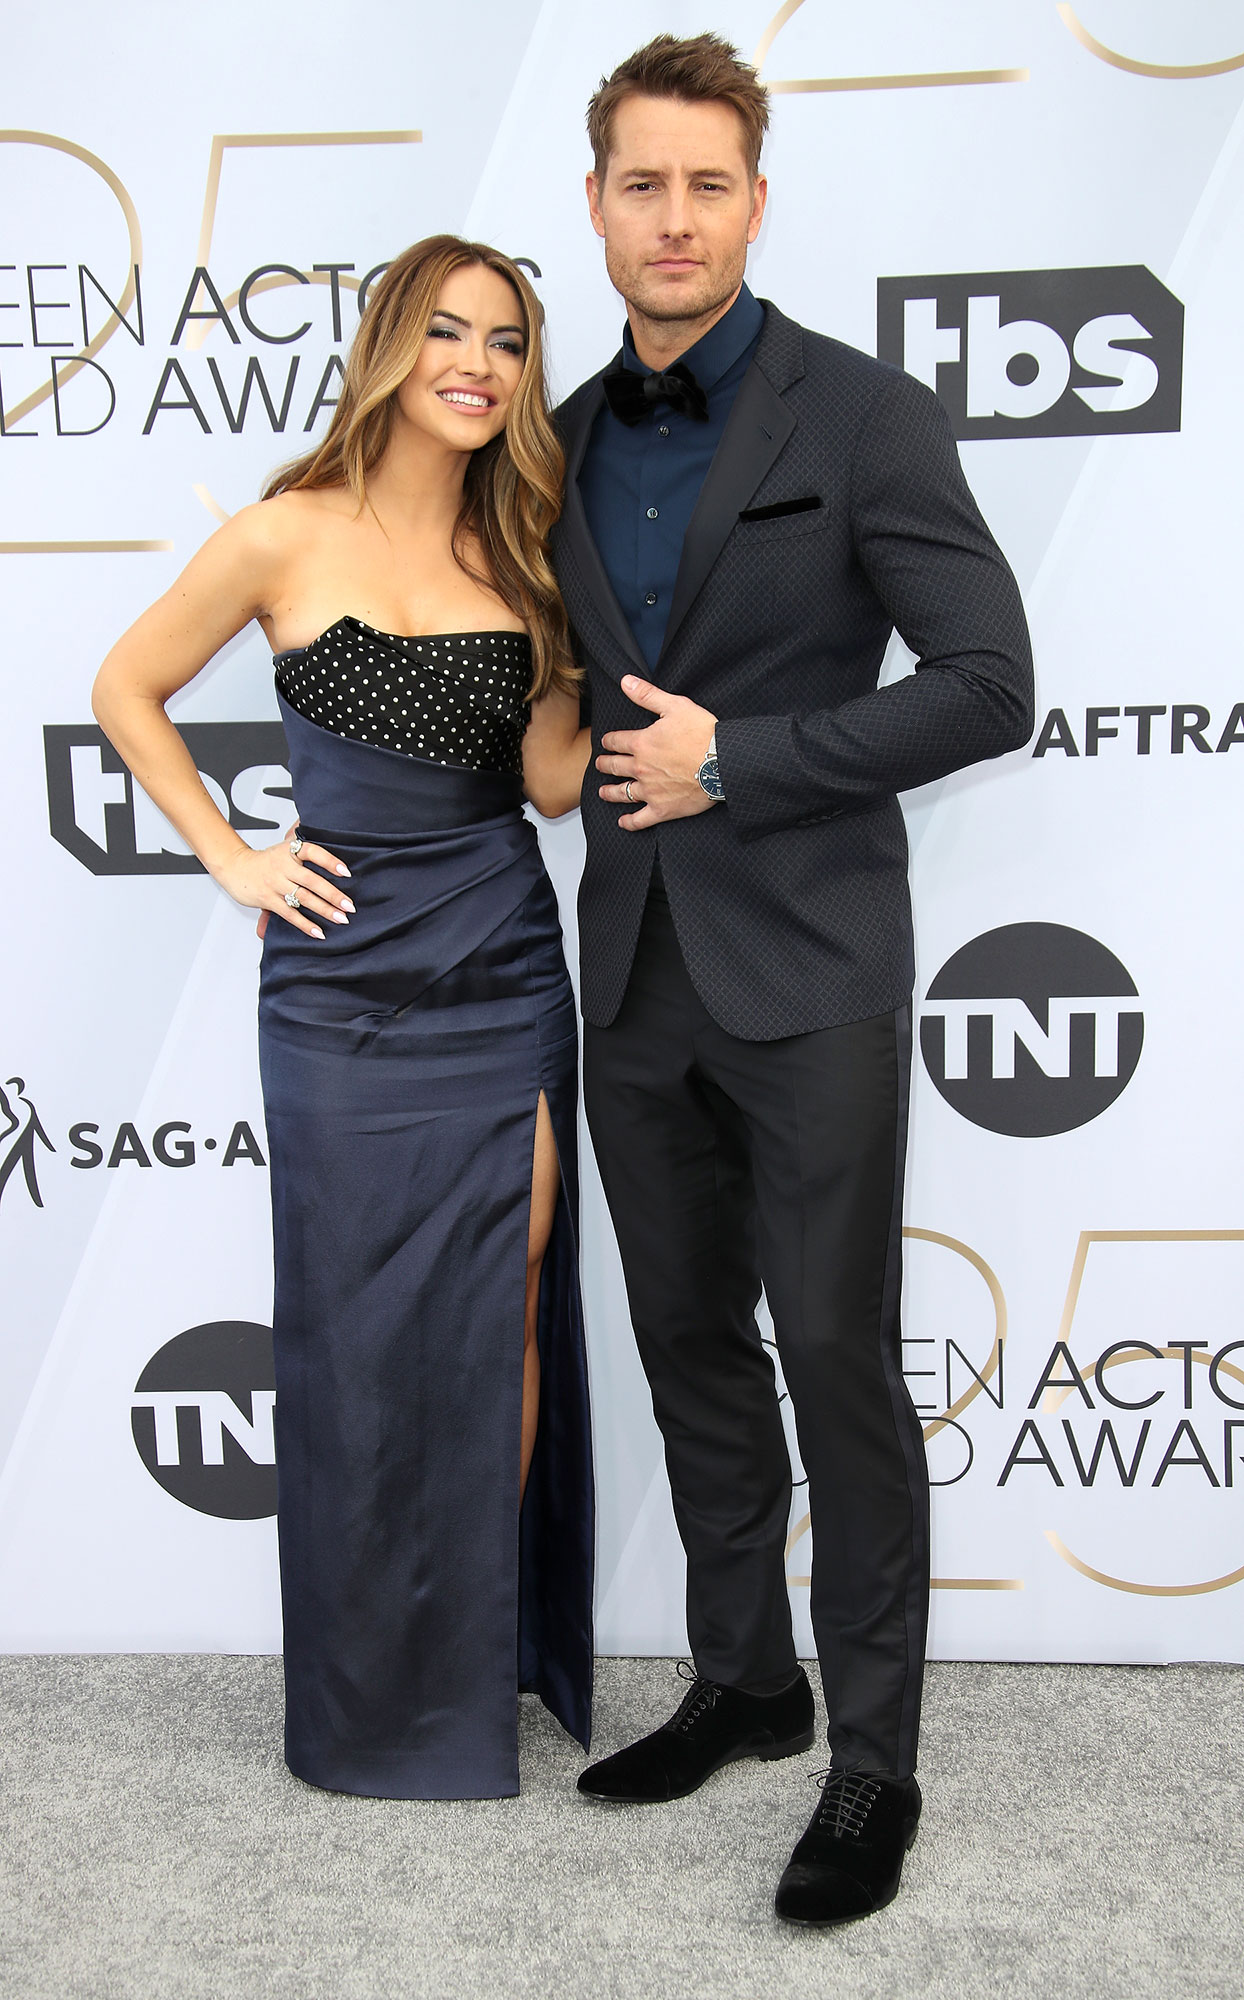 Chrishell Stause Is the 'Biggest Fan' of Husband Justin Hartley - Chrishell Stause and Justin Hartley attend the 25th Annual Screen Actors Guild Awards at The Shrine Auditorium on January 27, 2019 in Los Angeles, California.